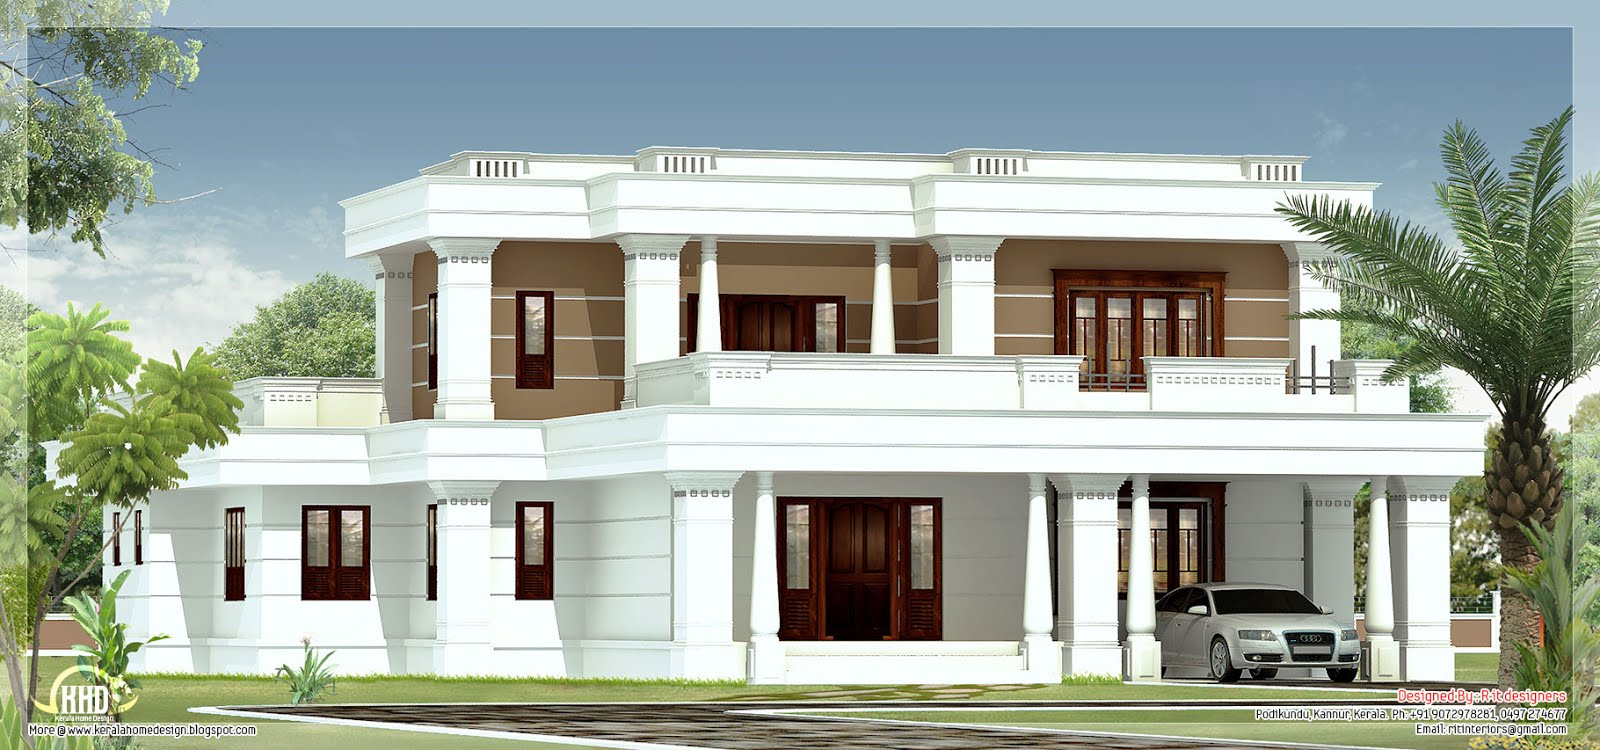 4 bedroom flat roof villa kerala home design and floor plans for Two floor house plans in kerala